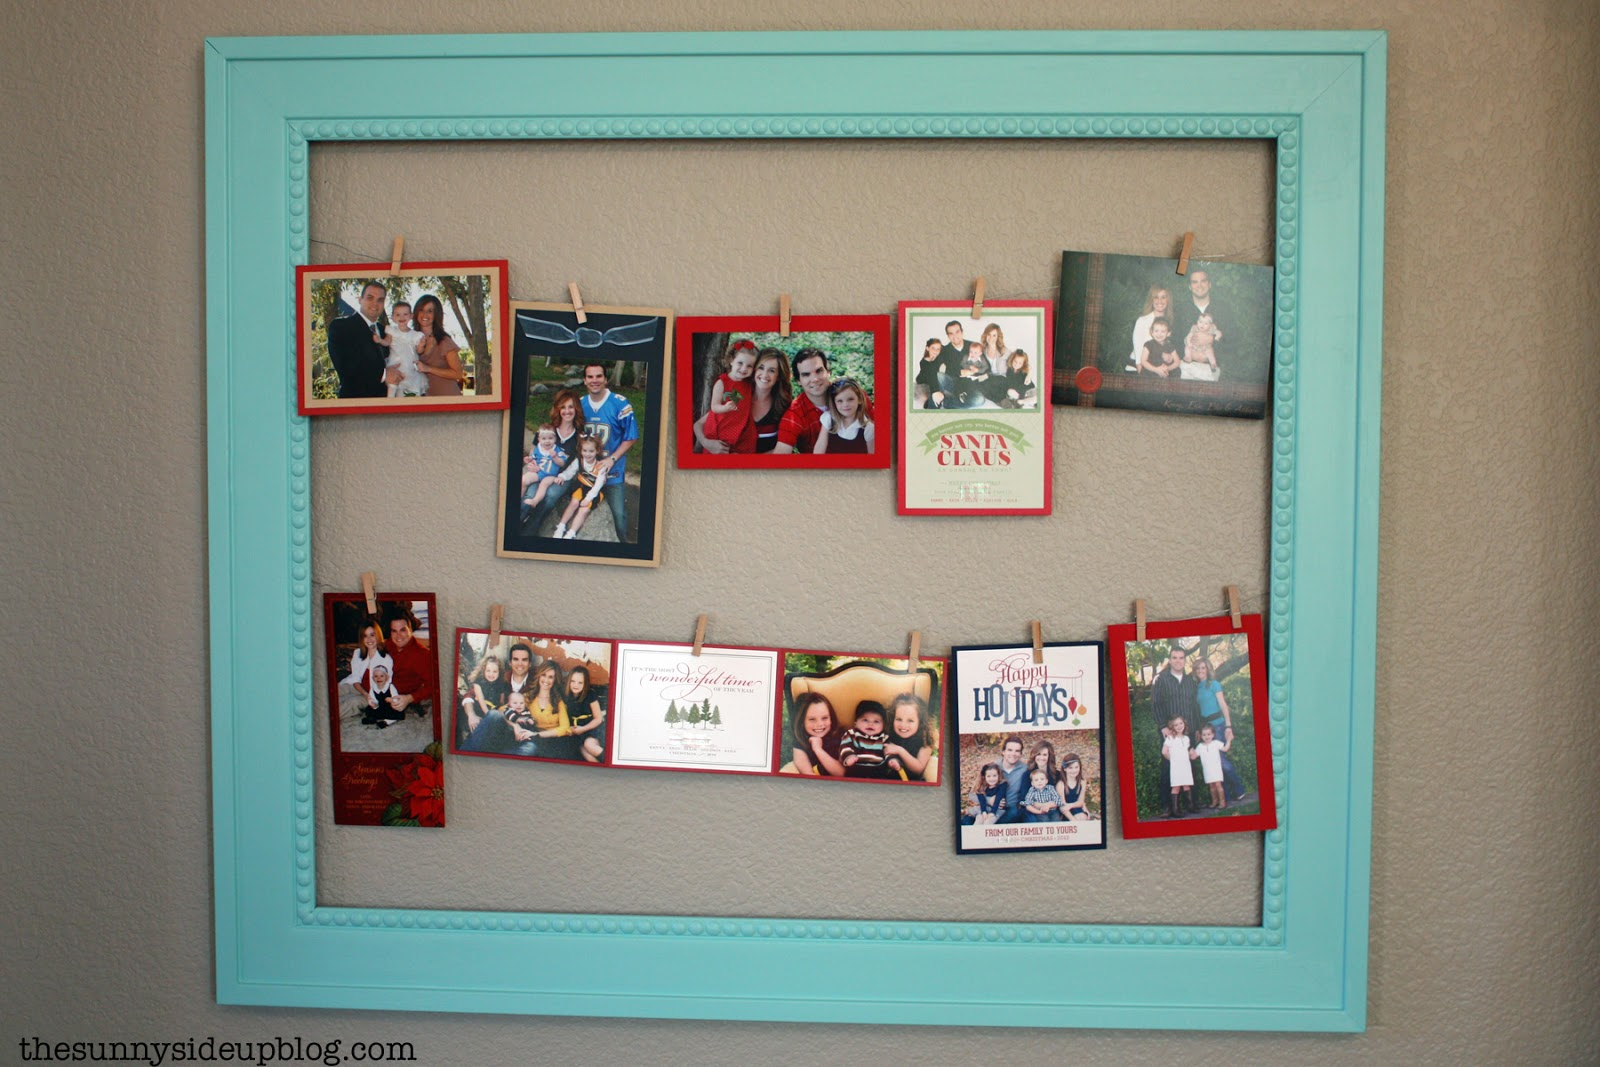 Picture frame spotlight the sunny side up blog i also used it to frame our own past christmas cards and other holiday artwork from the kids i just forgot to take pictures each month jeuxipadfo Choice Image